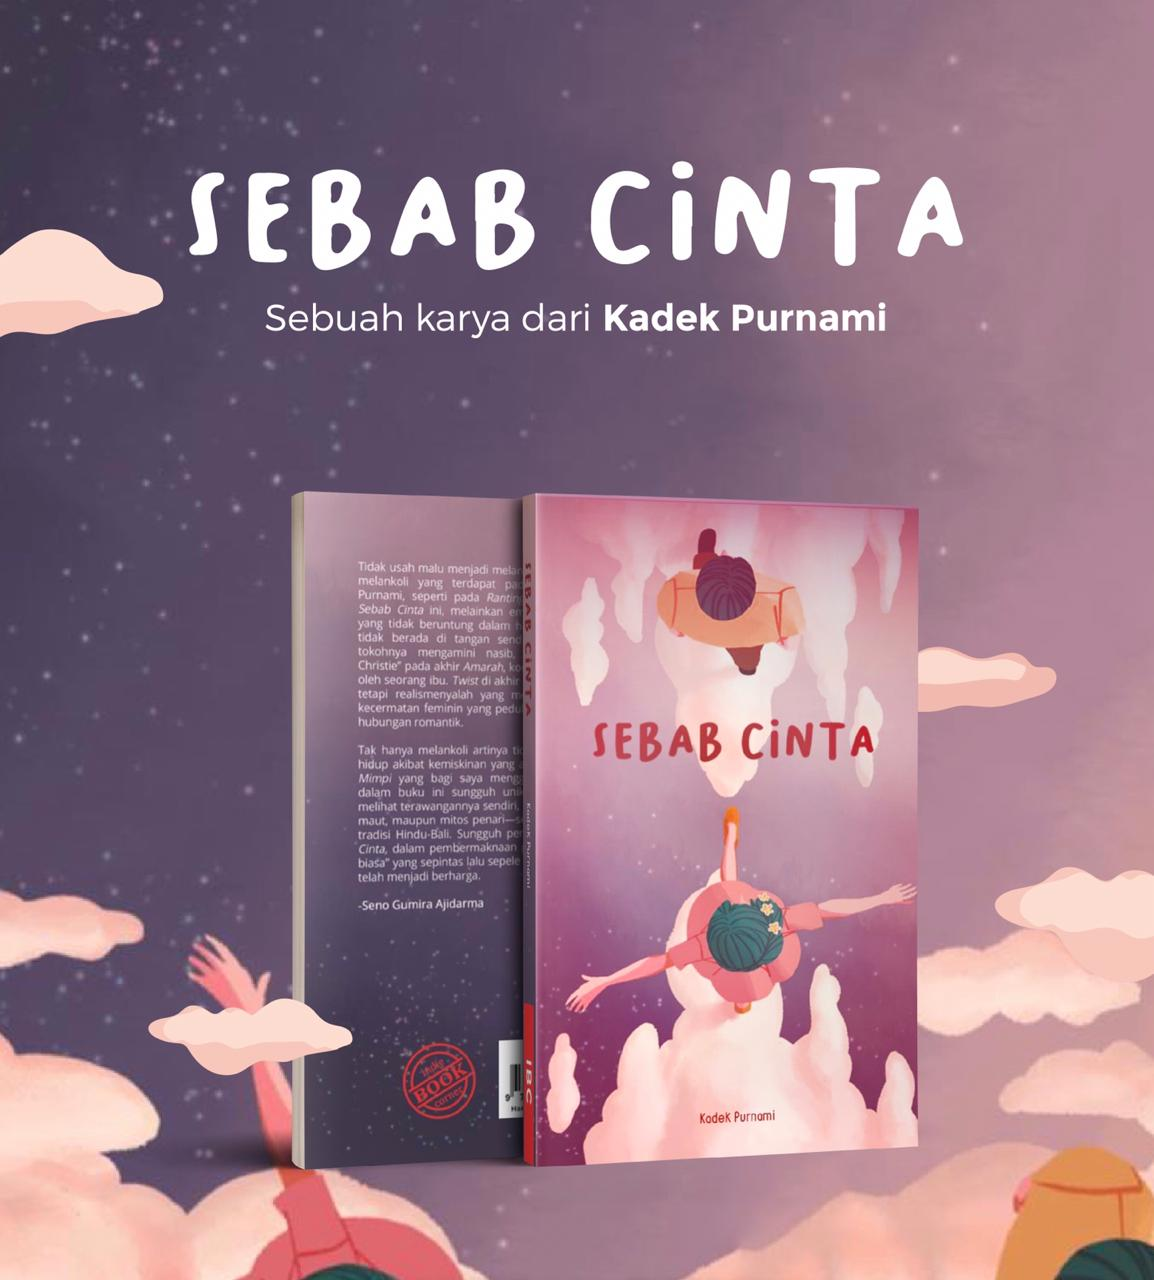 http://highend-traveller.com/reprint-of-the-short-stories-compilation-sebab-cinta-by-kadek-purnami-and-its-transition-to-audiobook/